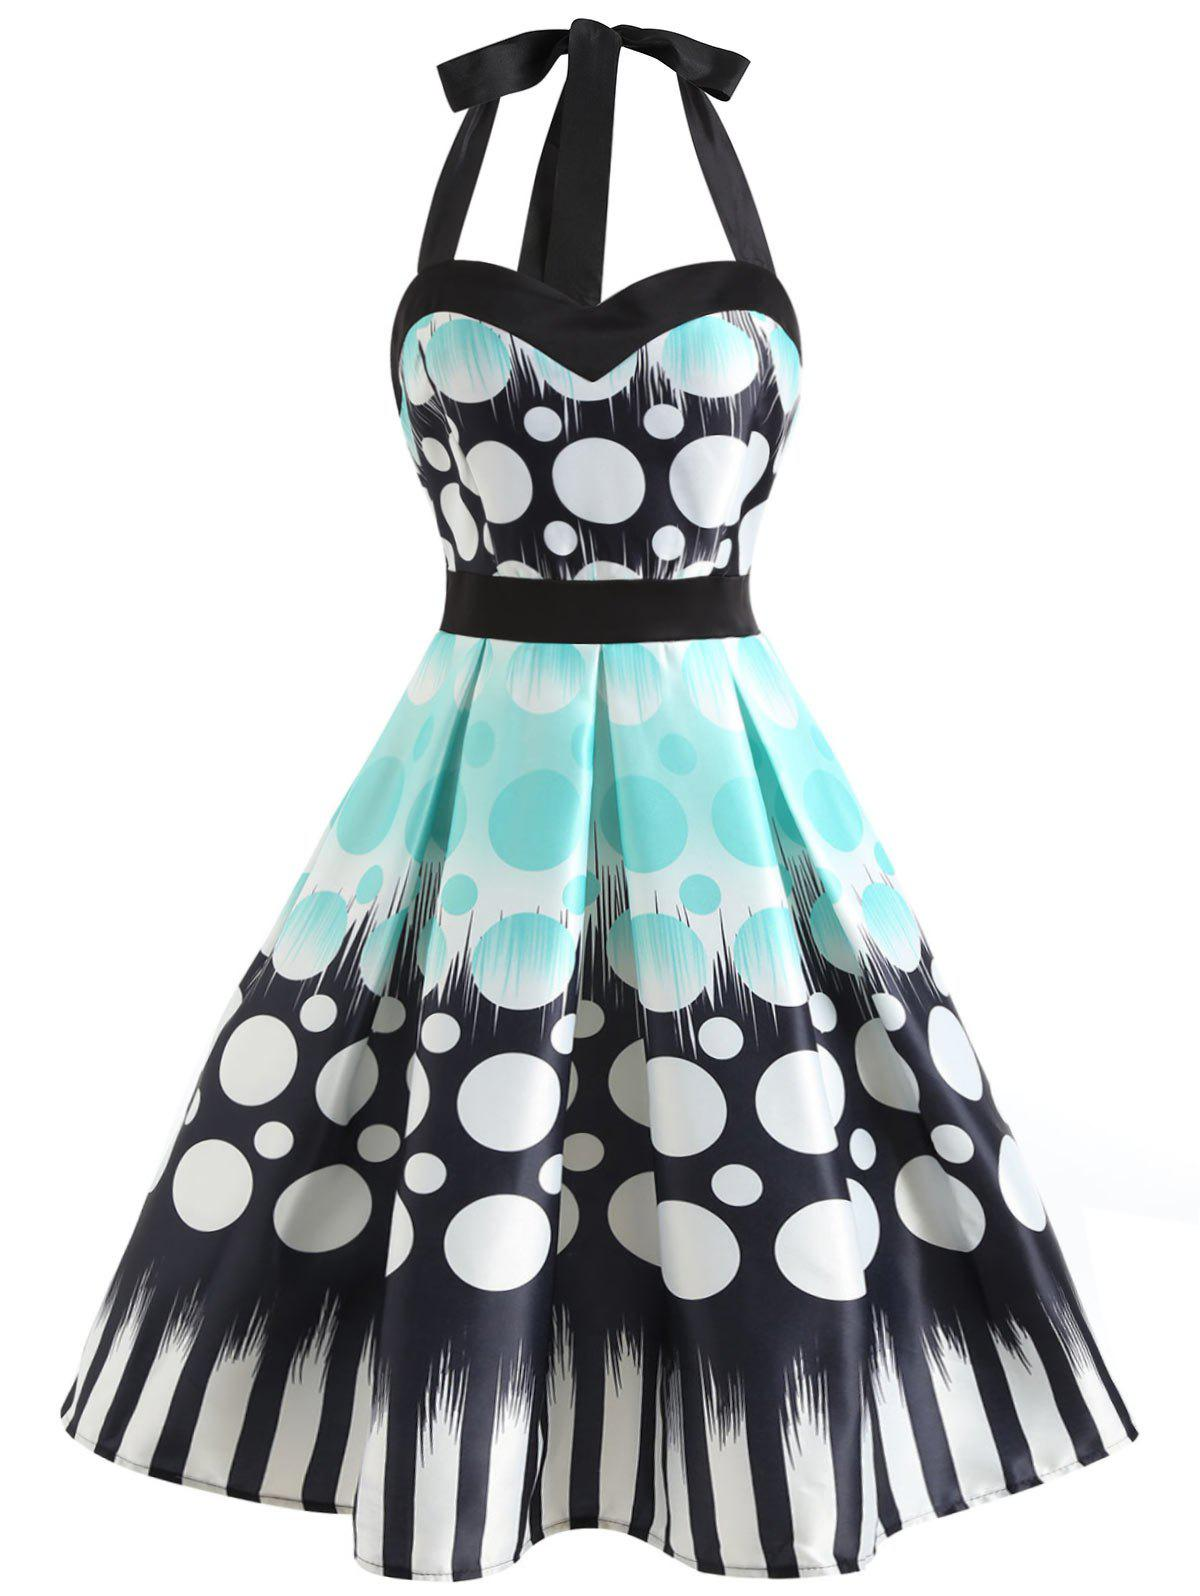 Unique Halter Neckline Polka Dot Print Dress